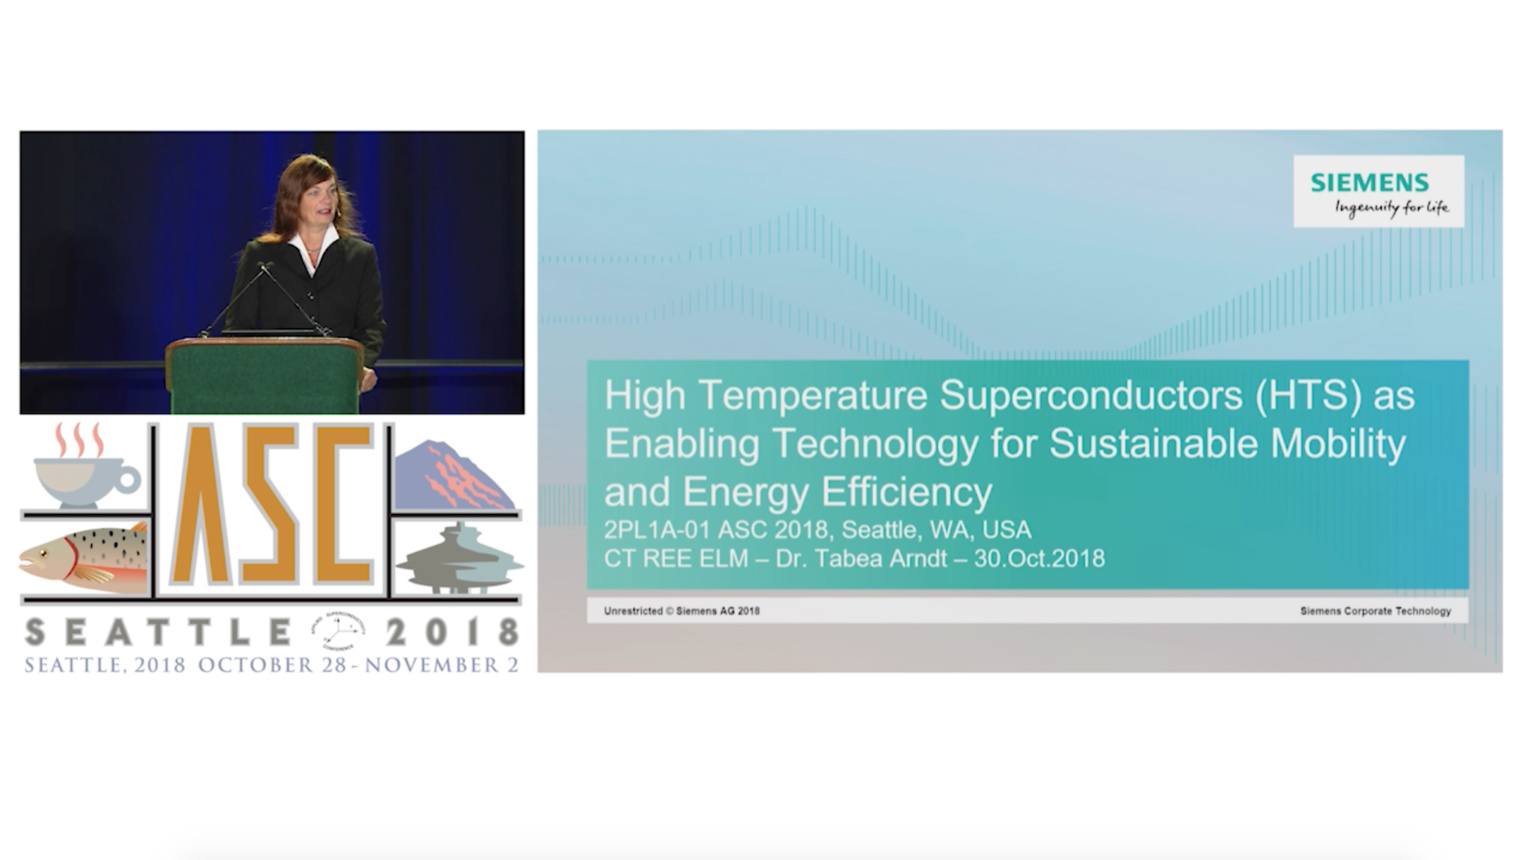 High Temperature Superconductors (HTS) as Enabling Technology for Sustainable Mobility and Energy Efficiency - Applied Superconductivity Conference 2018